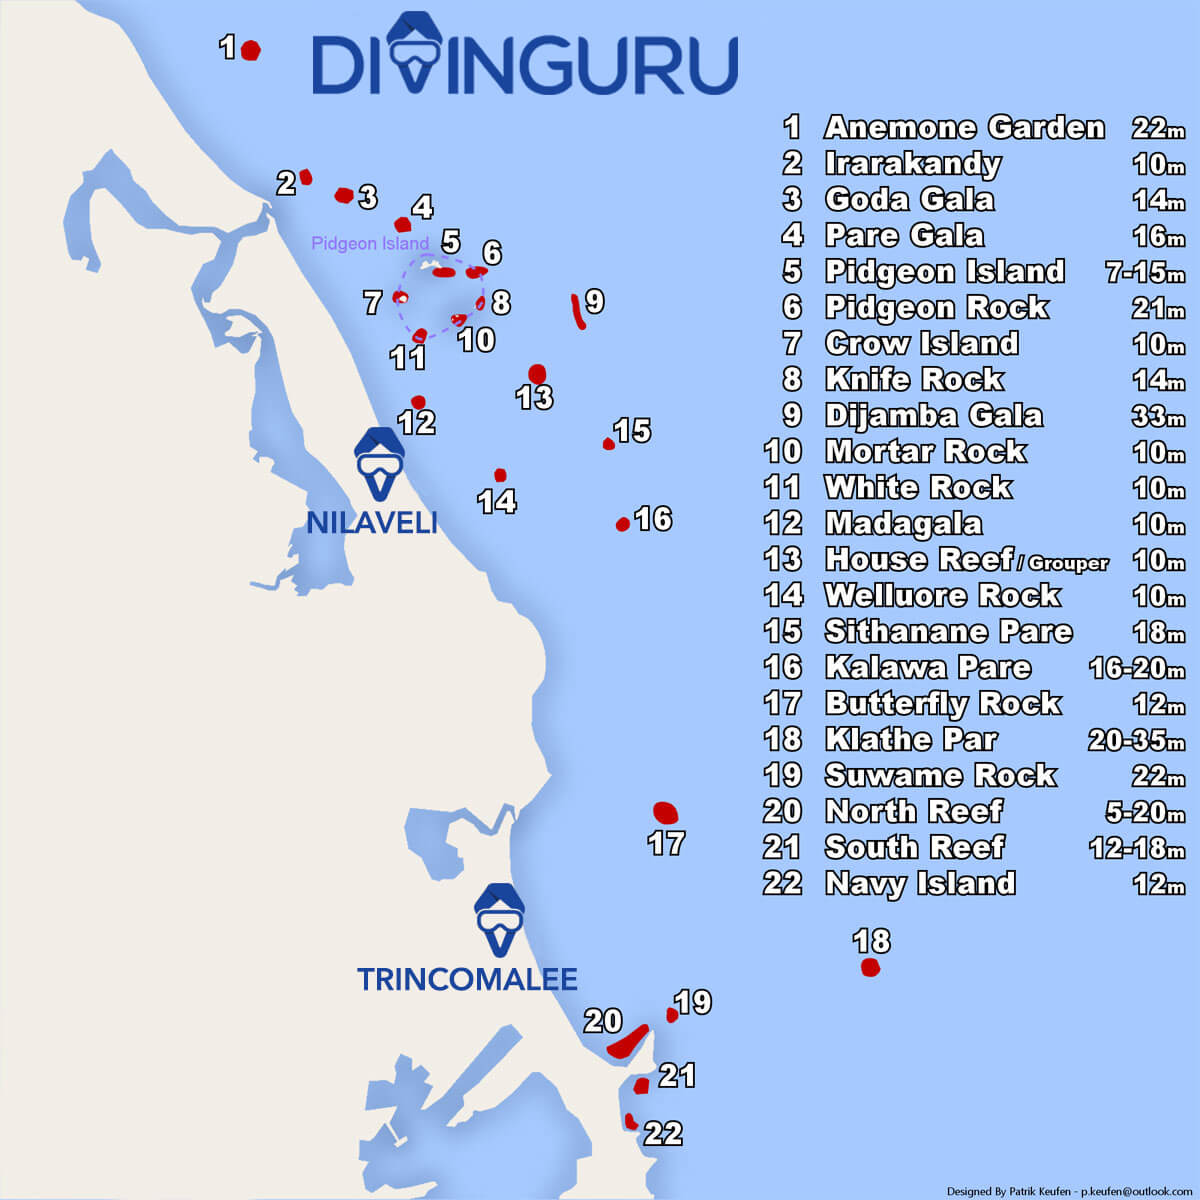 best scuba diving spots and snorkeling sites in Nilaveli and Trincomalee east coast Sri Lanka